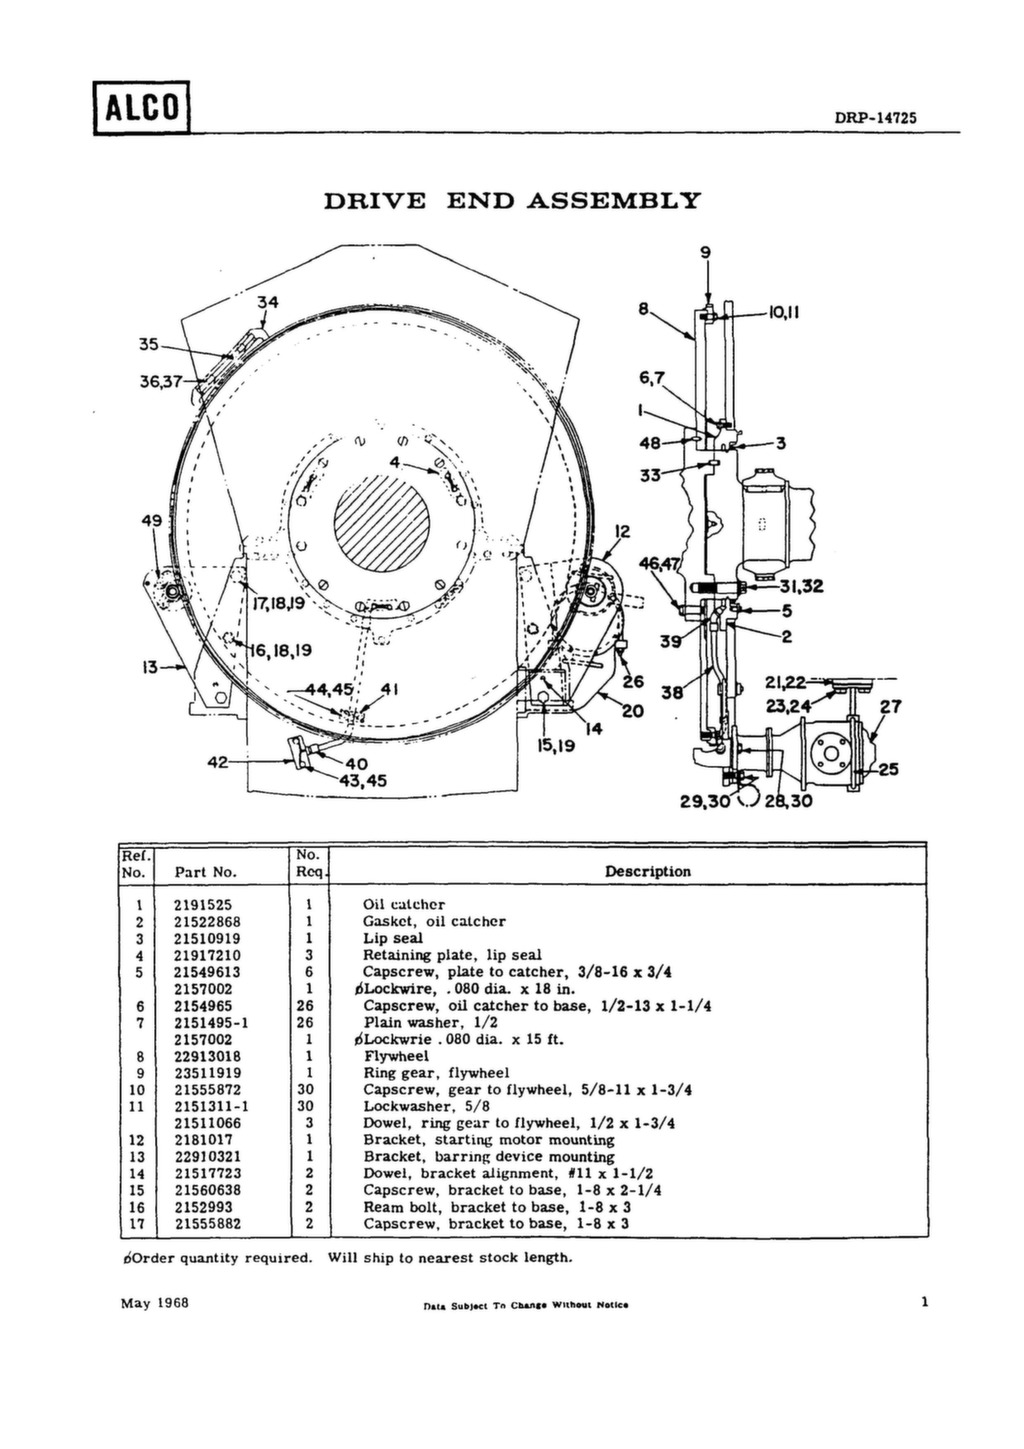 Cumminssel 6cta 8 3 Master Parts Manual